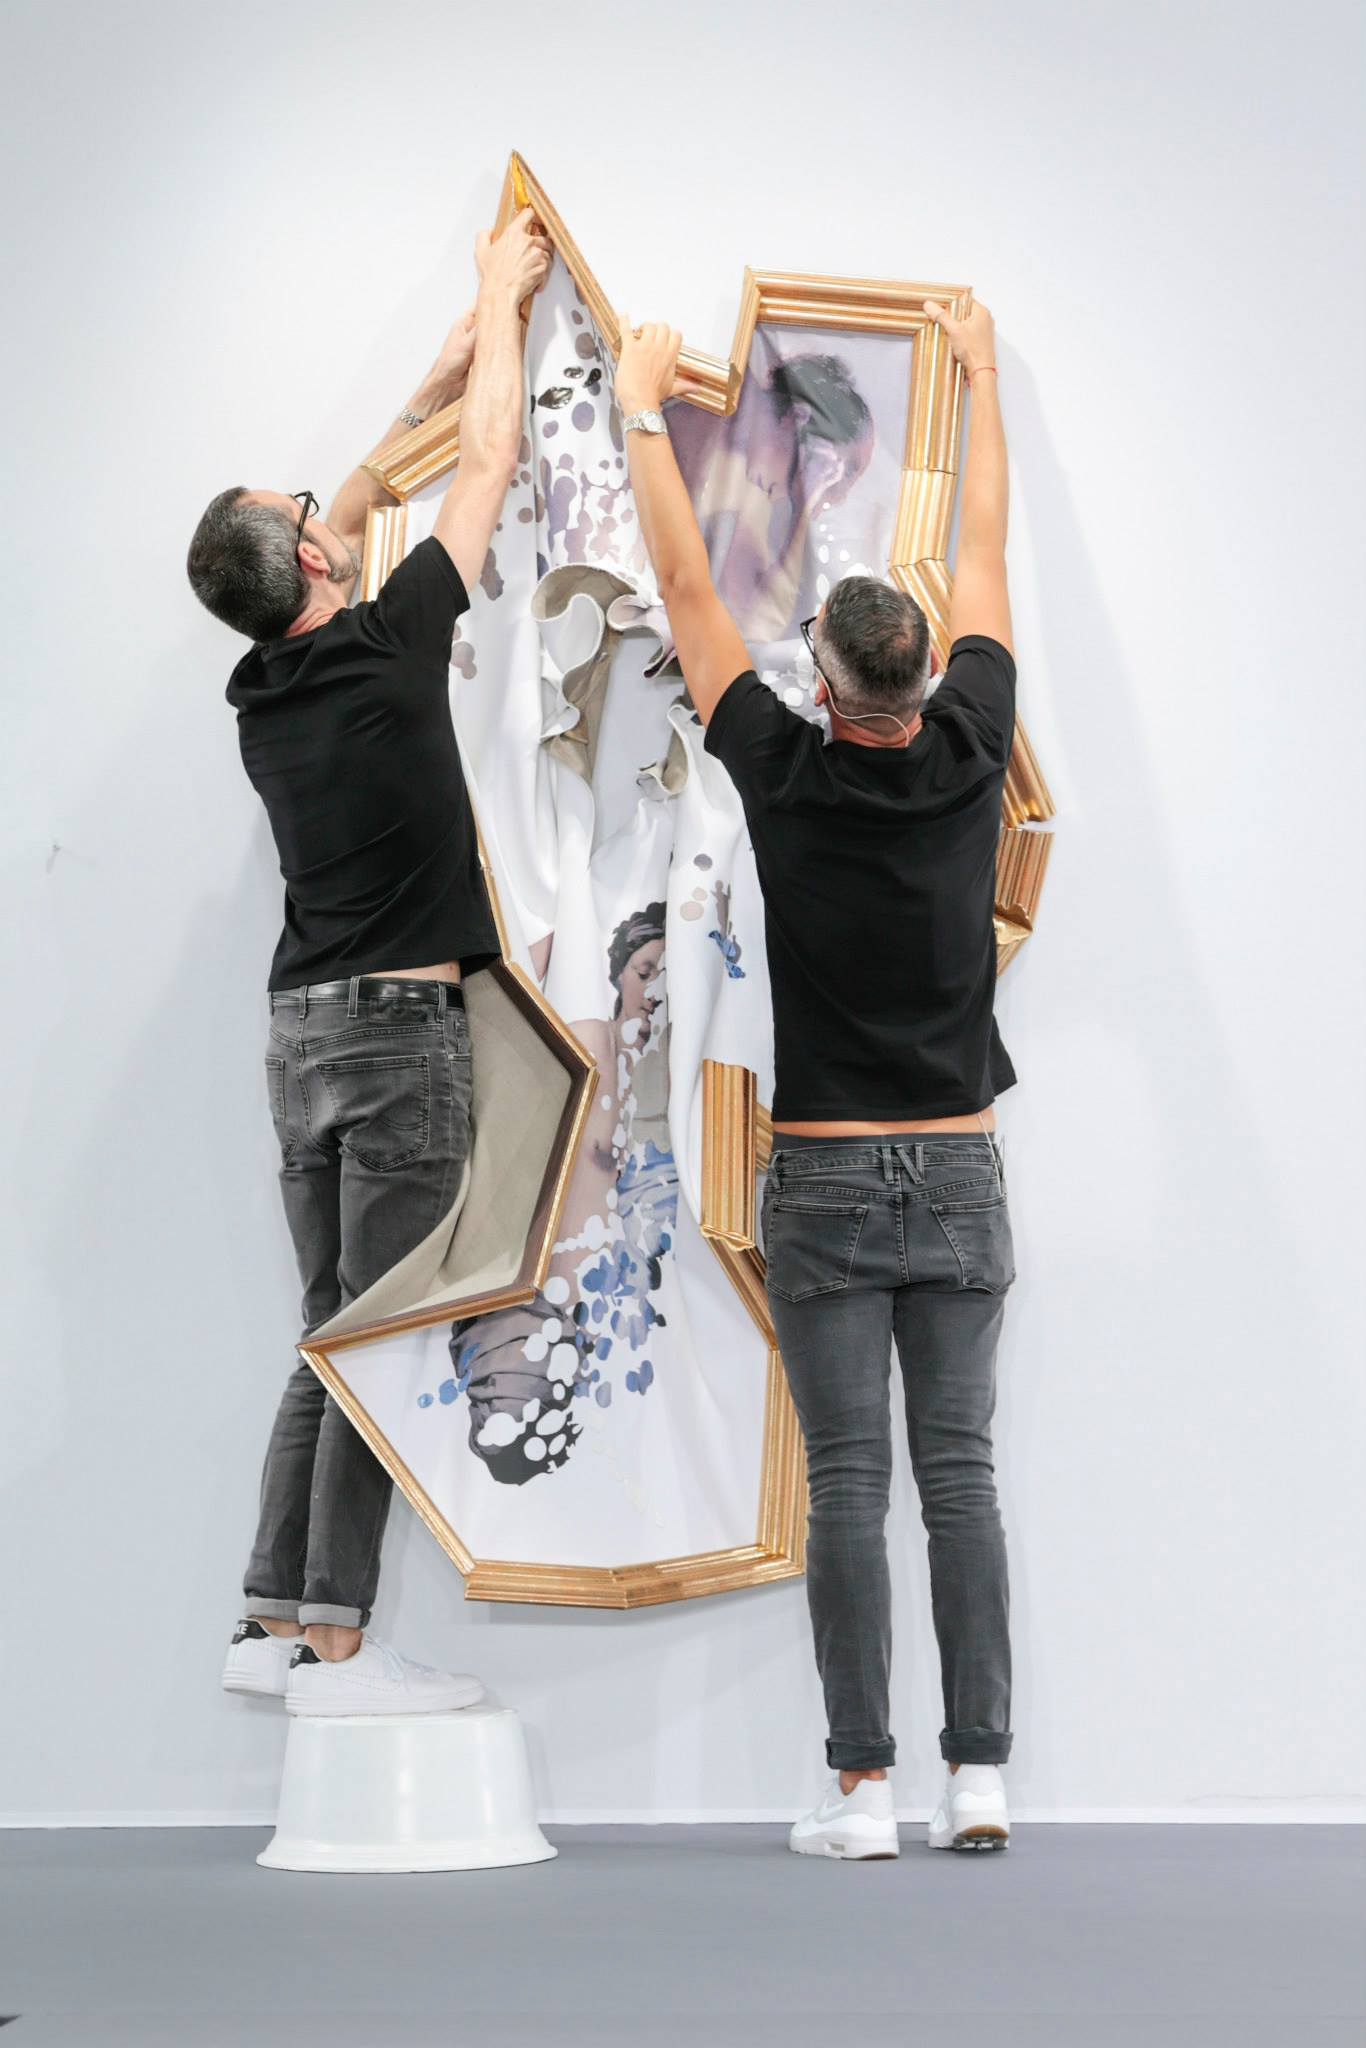 Fashion Duo Viktor Rolf Blur The Line Between Fashion And Art